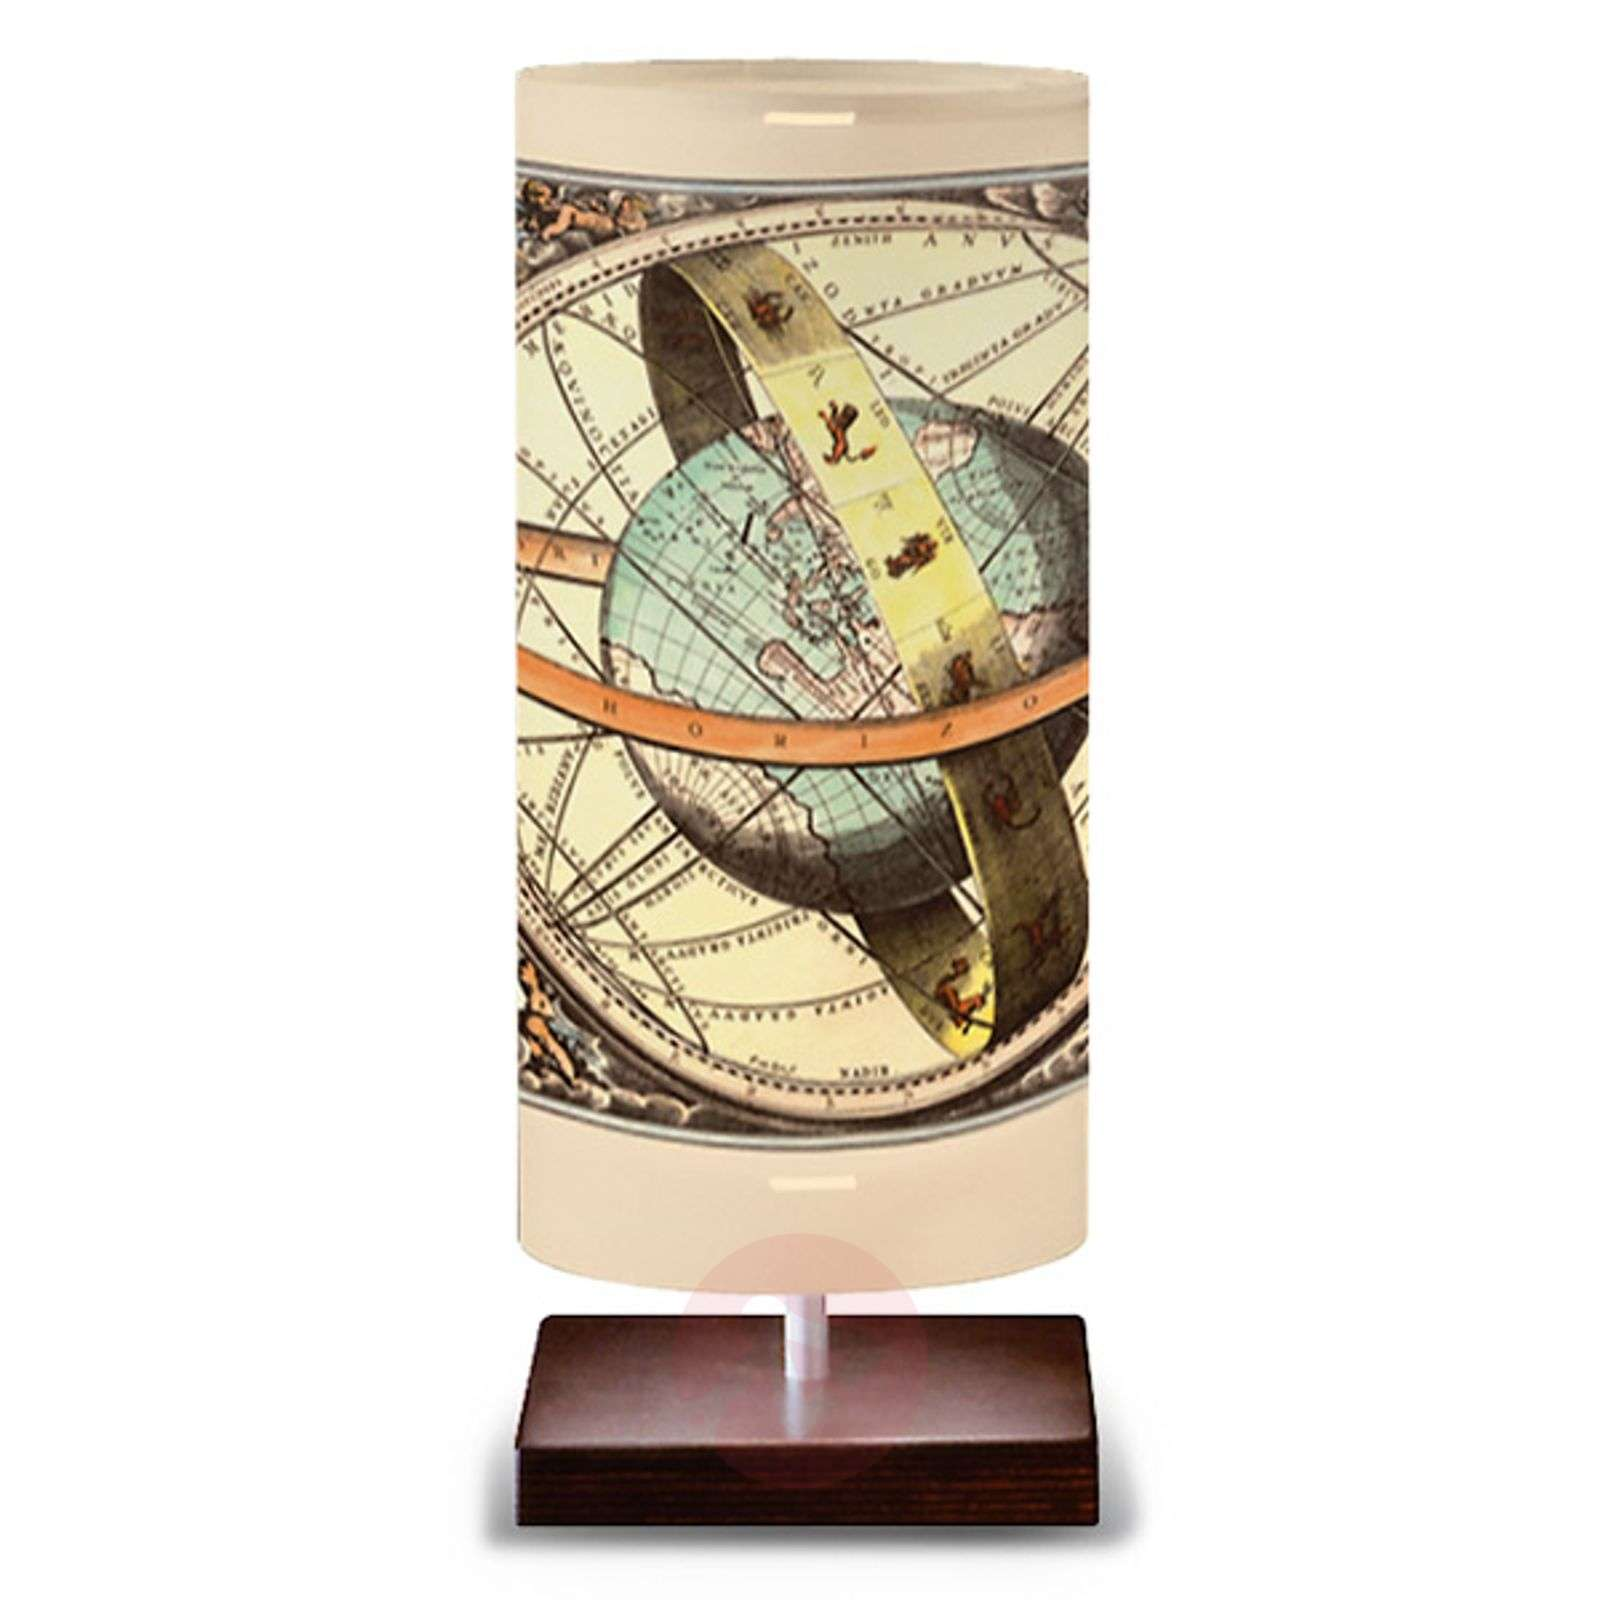 Globe table lamp with a globe design-1056090-01